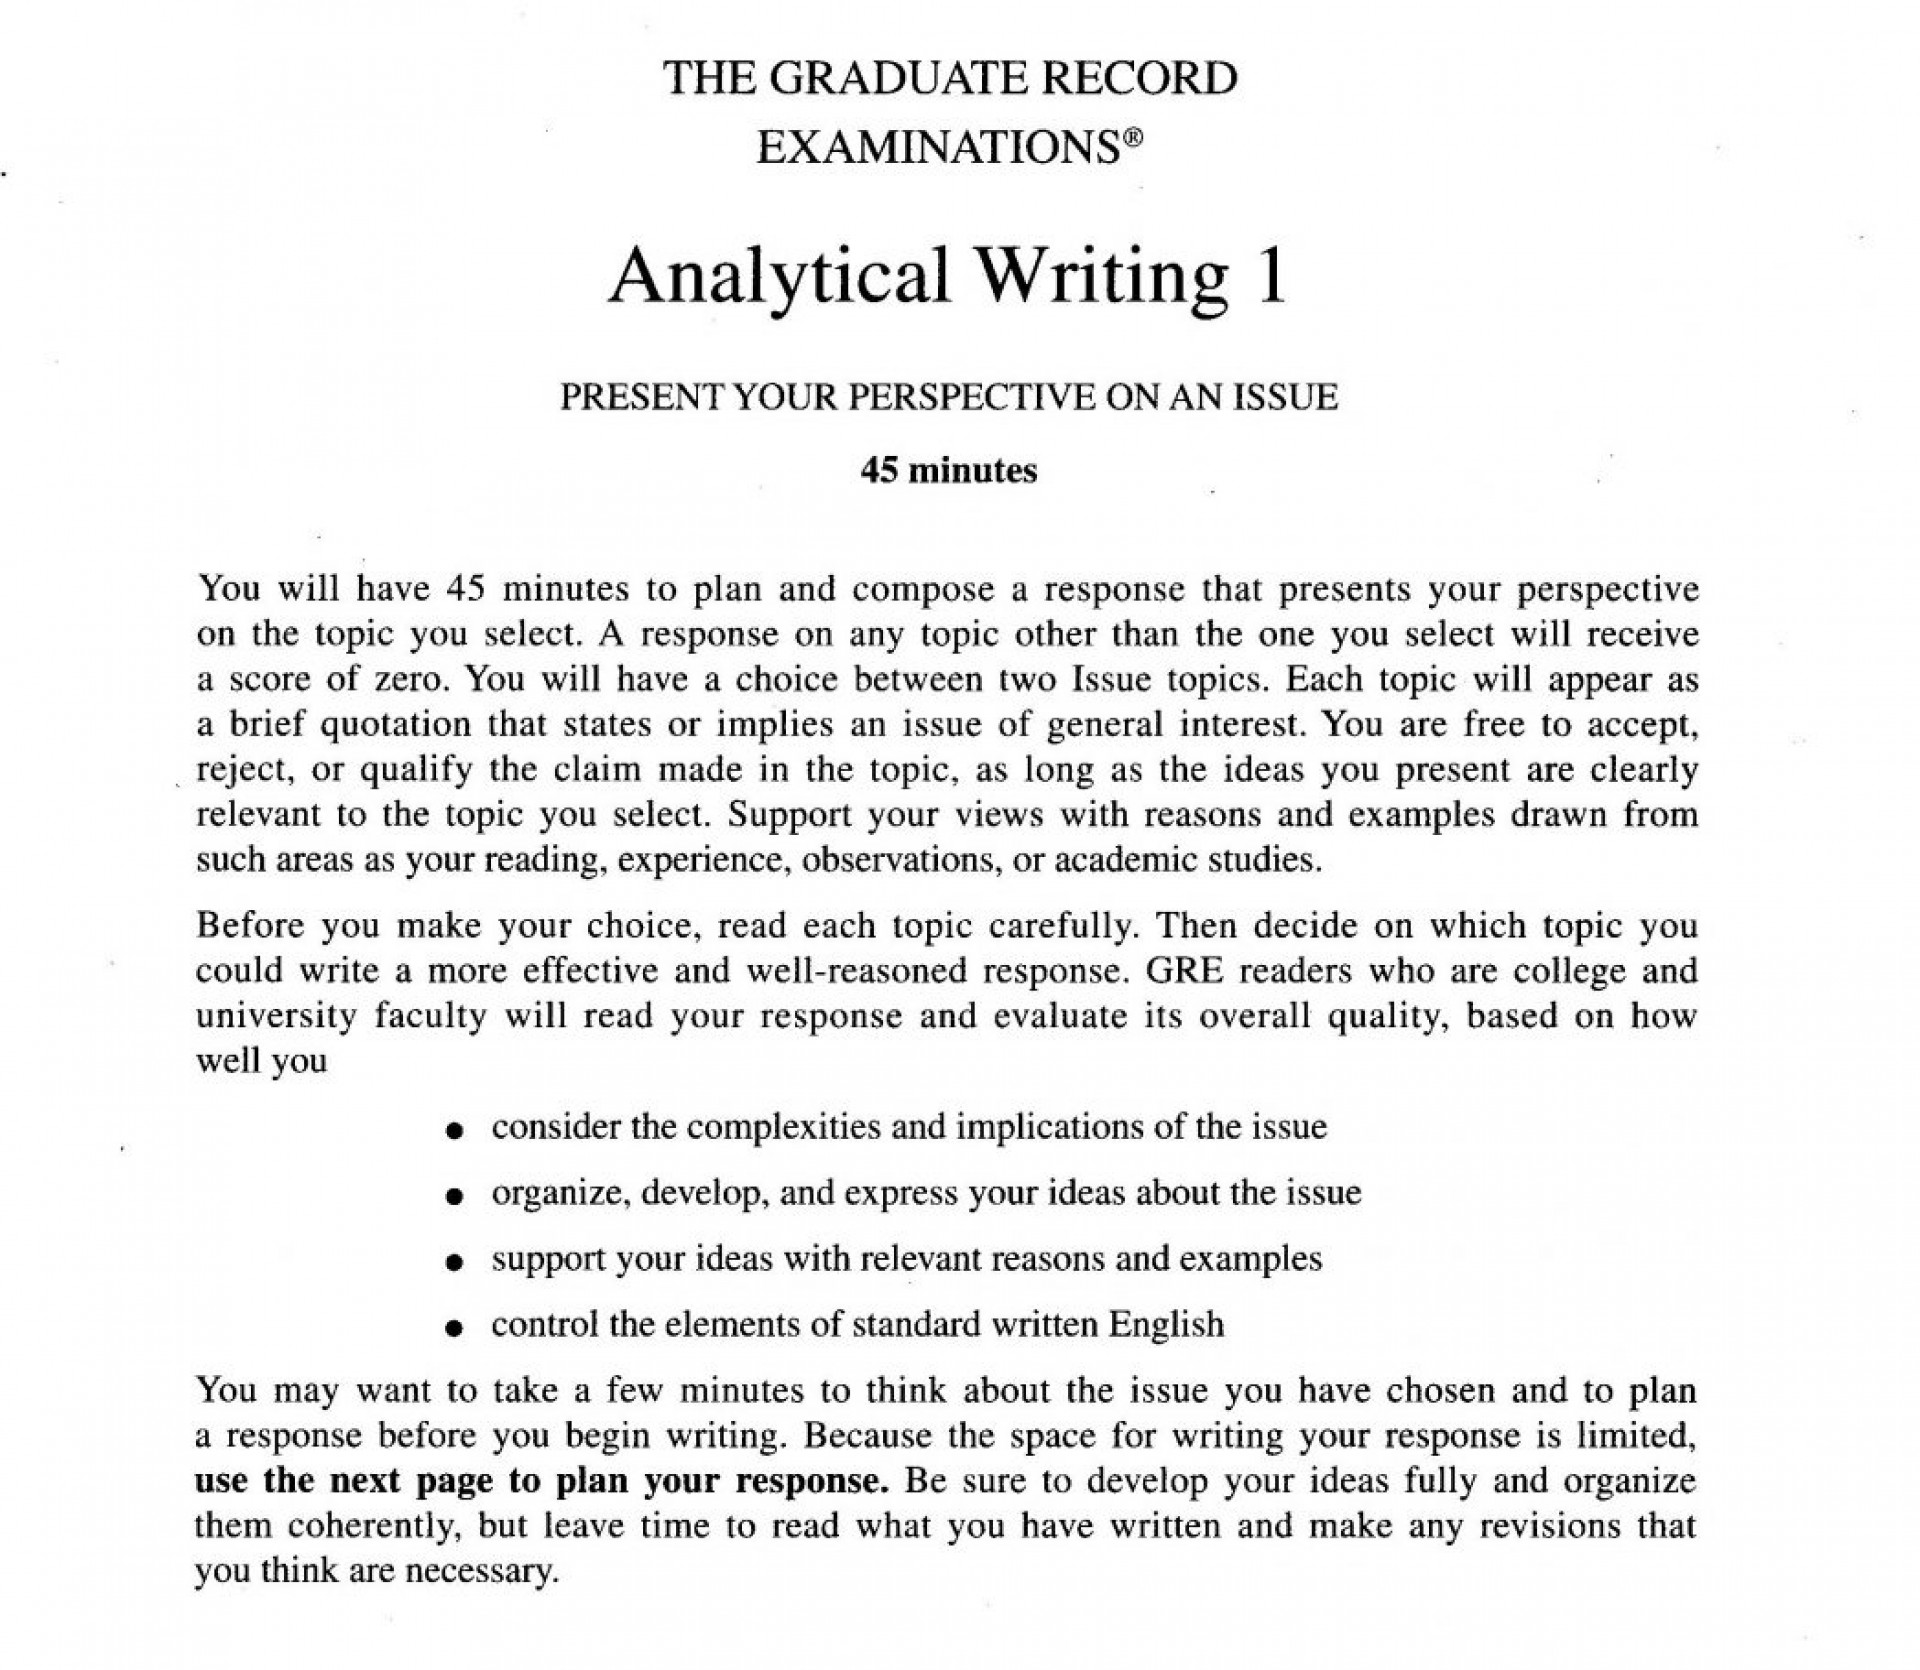 019 Essay Example How To Write An Fast Examination On Halloween Topics Aqua Ip In Exam Fascinating Academic English 1920